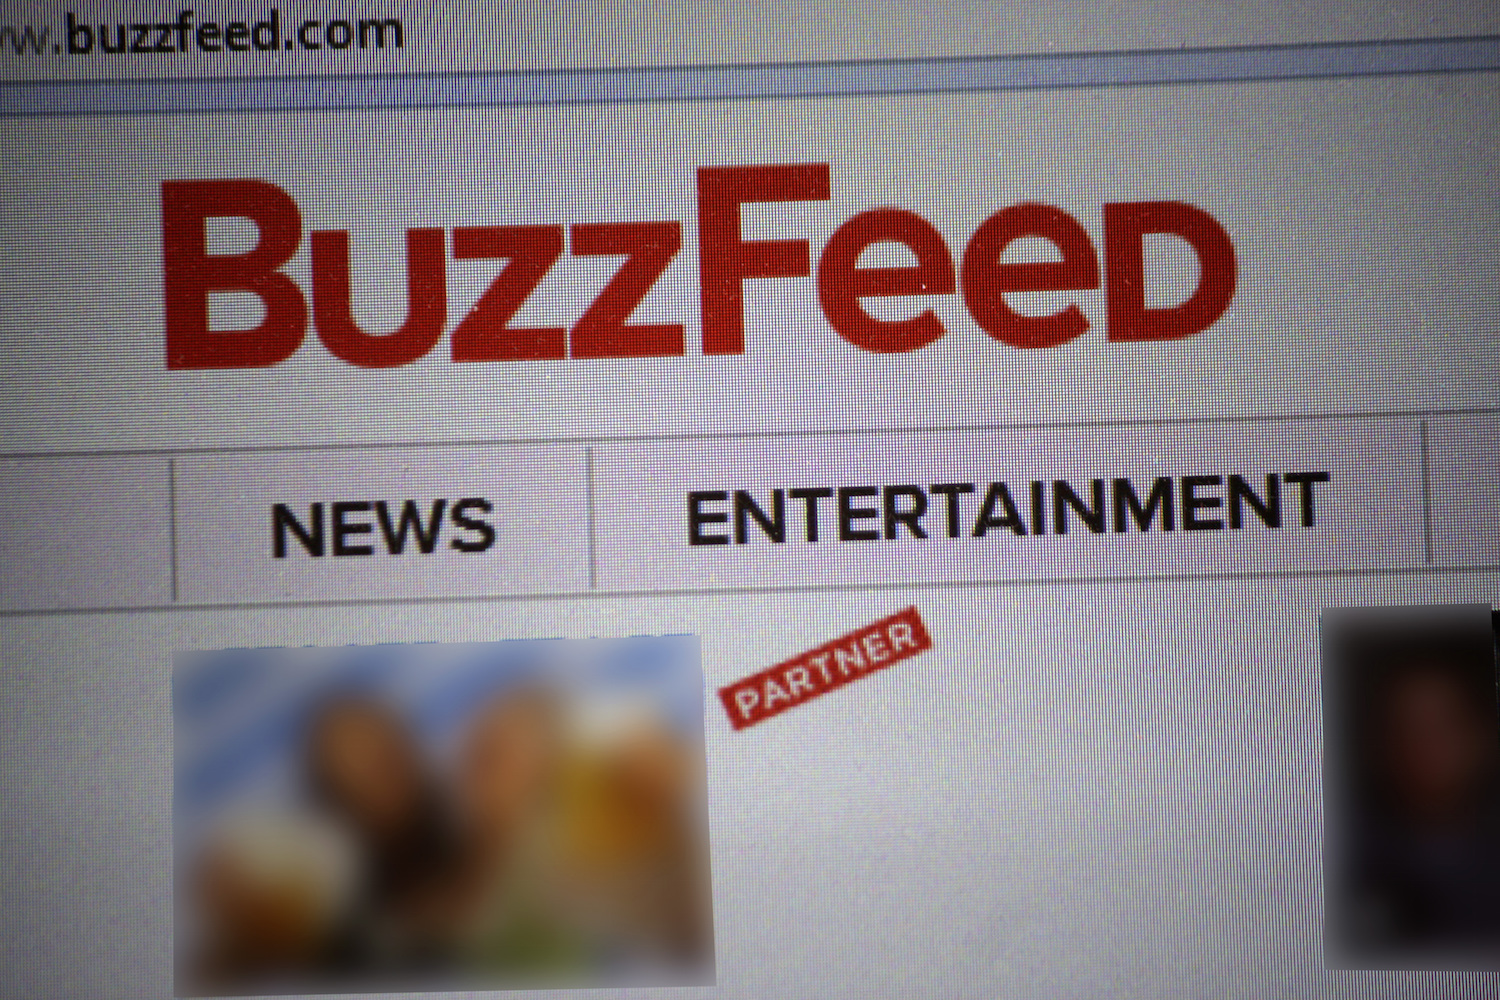 Hackers Hit Buzzfeed, Claim to Have Database